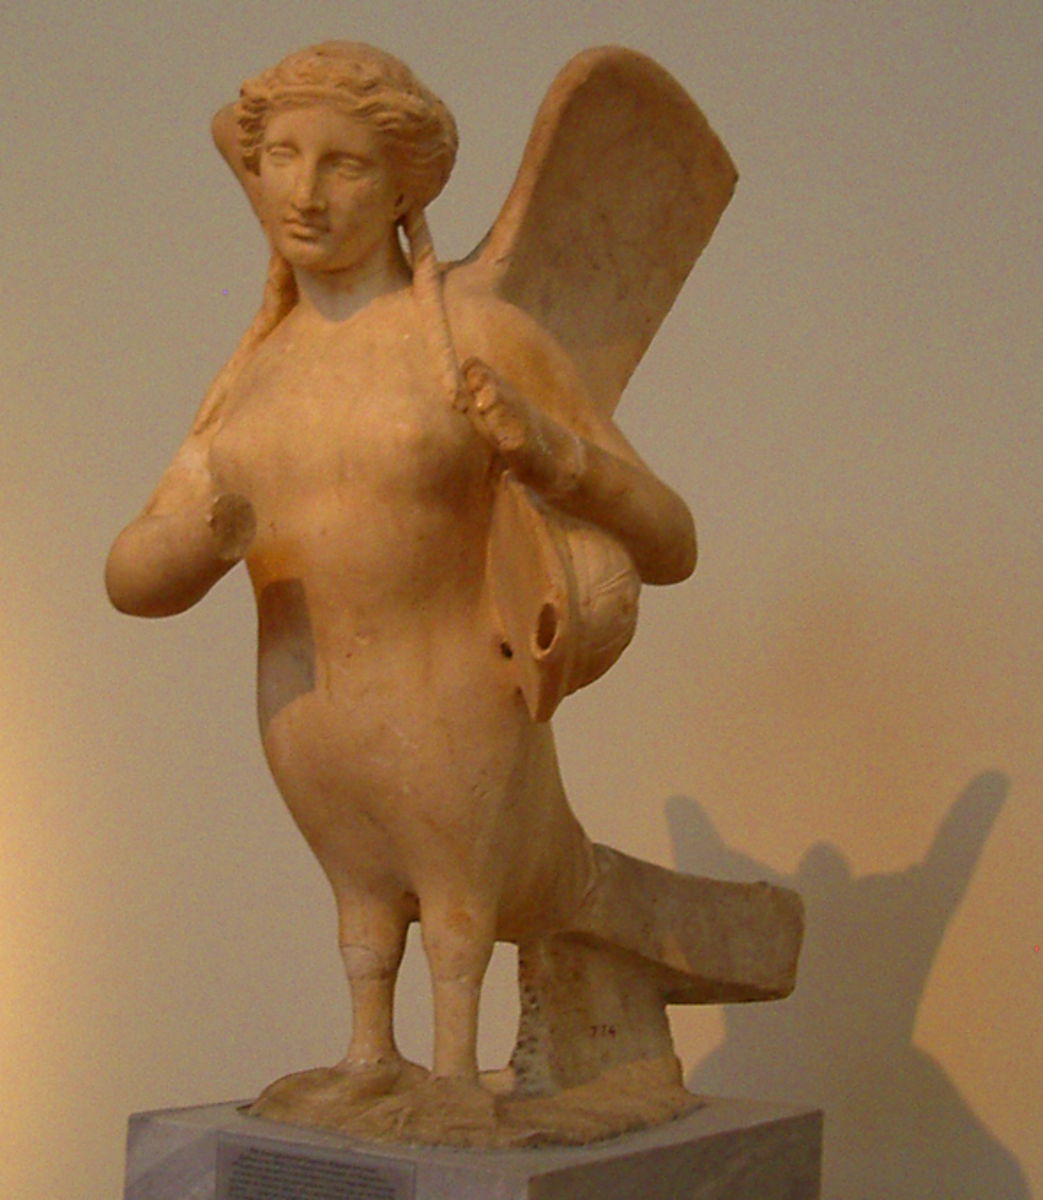 Siren Funerary Sculpture from the Kerameikos, Athens - NM 6236